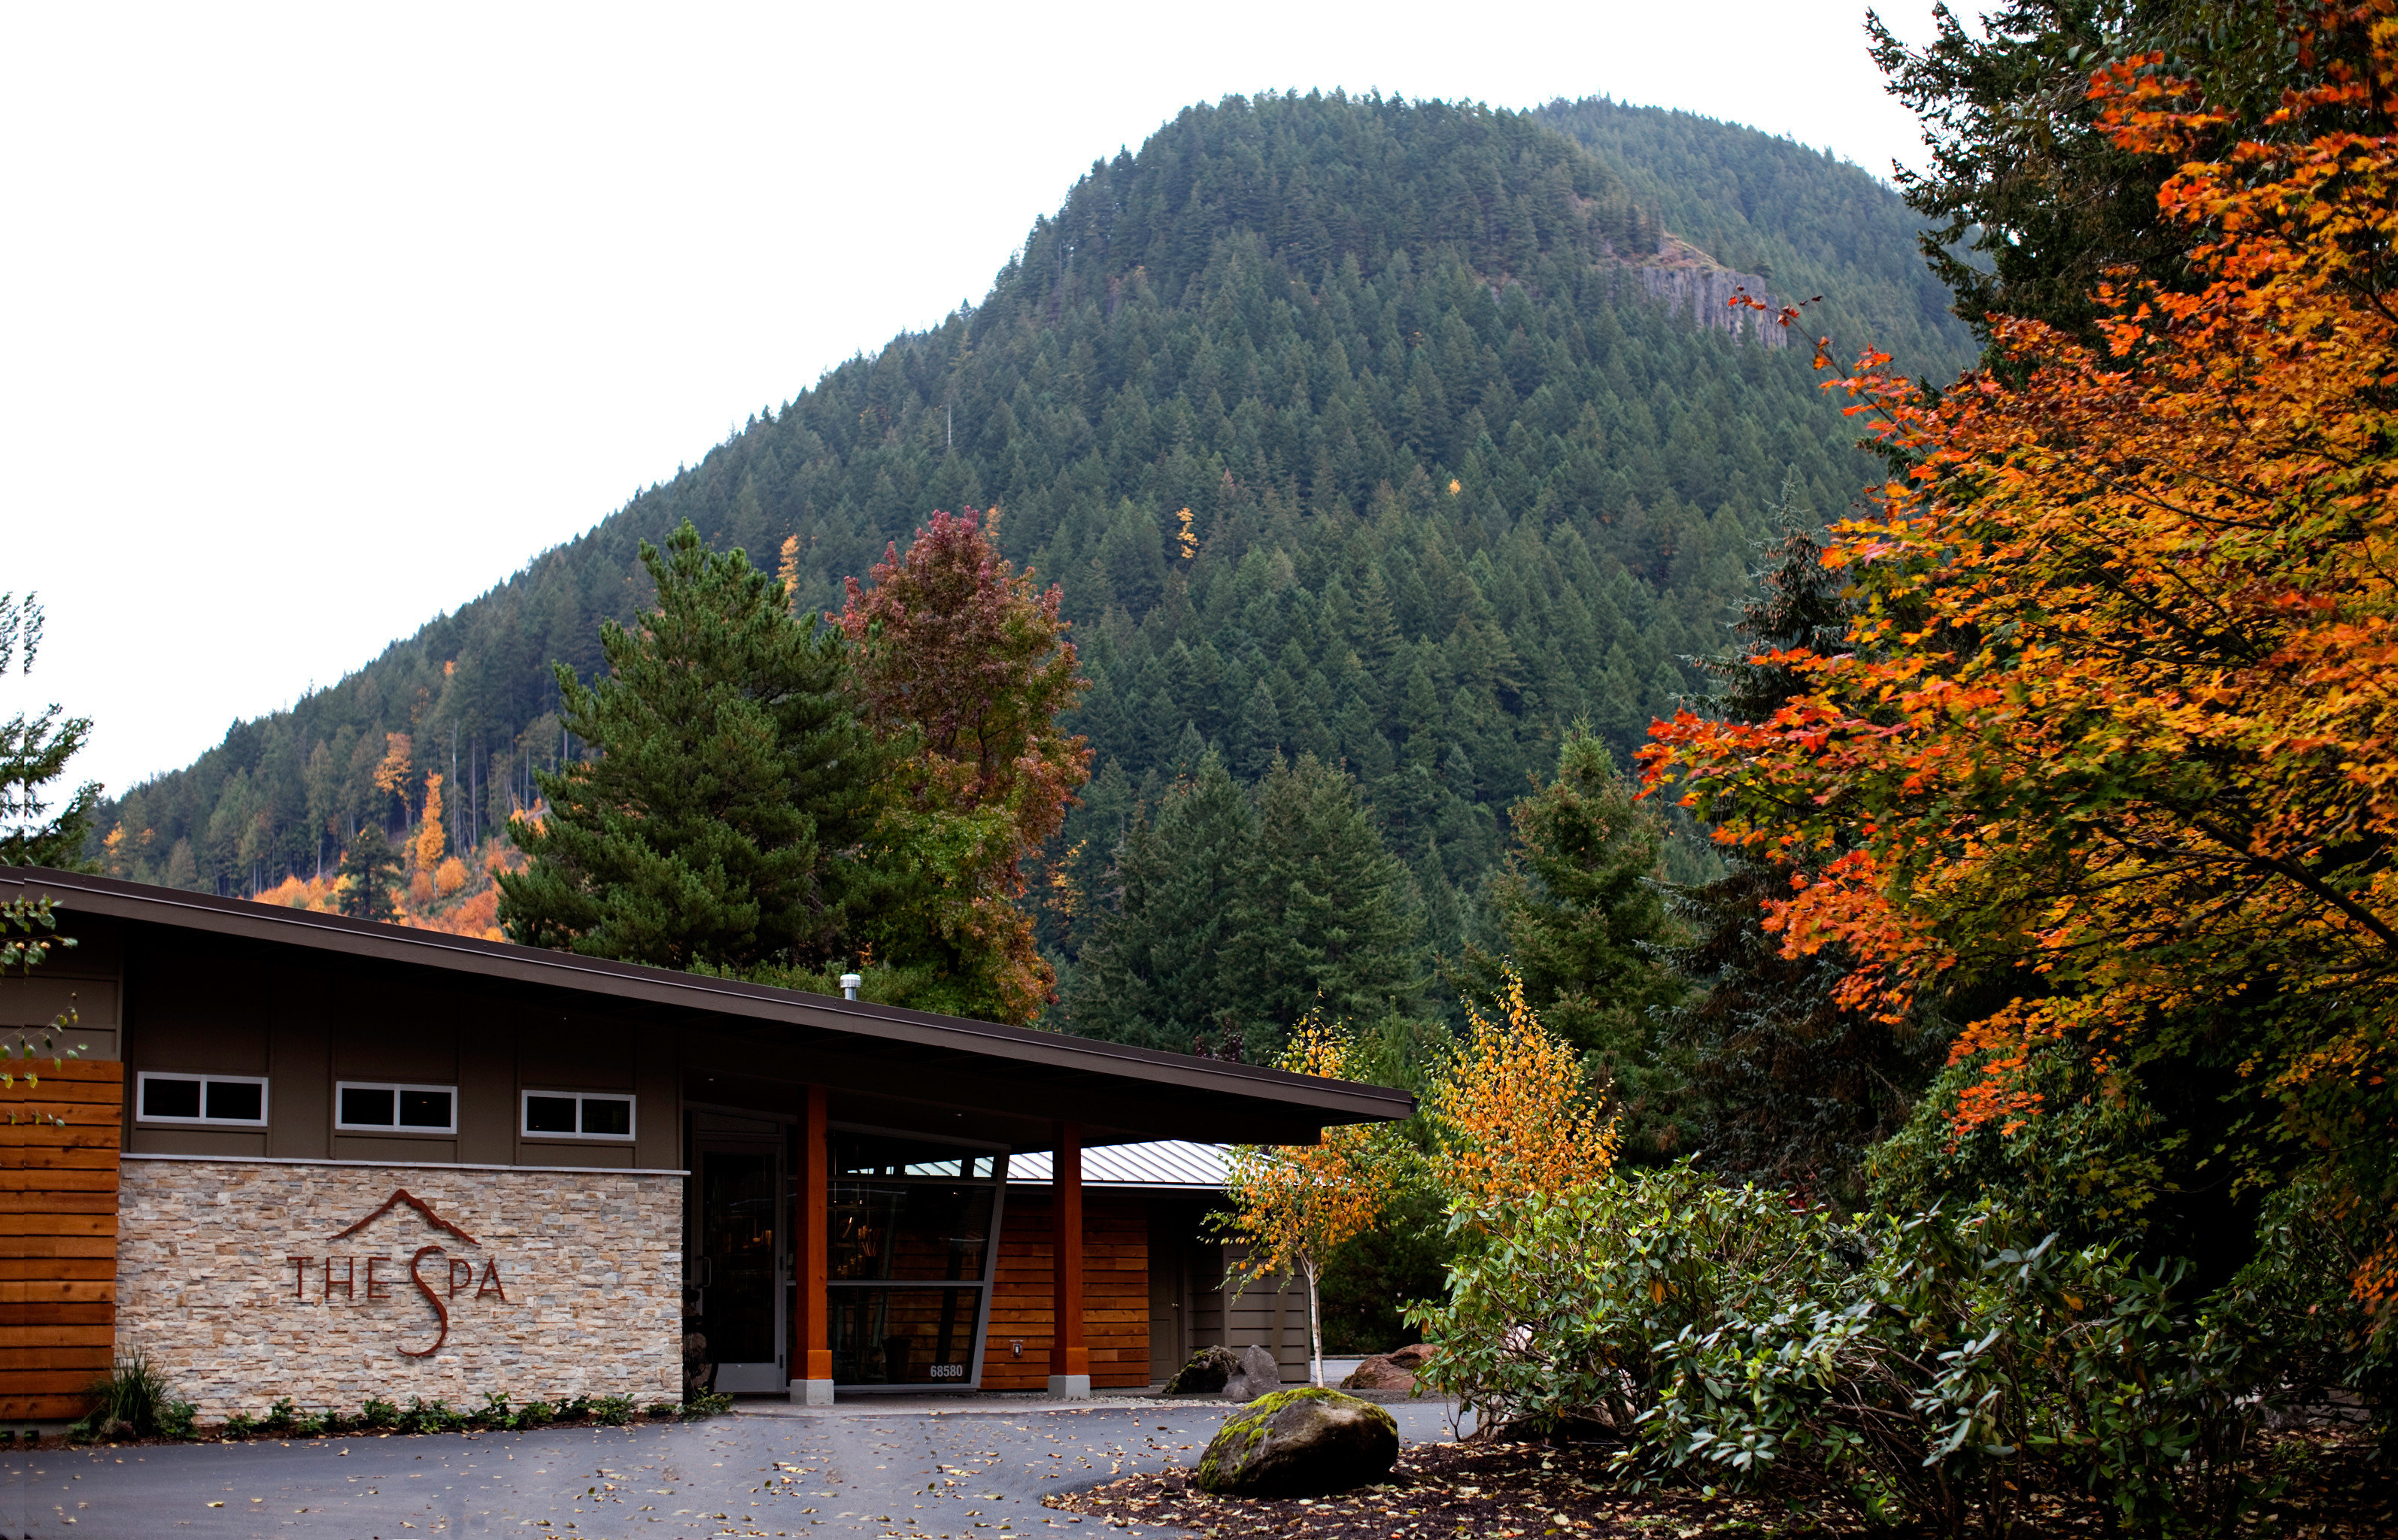 Exterior Forest Grounds Mountains Natural wonders Nature Outdoor Activities Outdoors Resort Rustic Scenic views tree mountainous landforms mountain season house autumn leaf mountain range surrounded